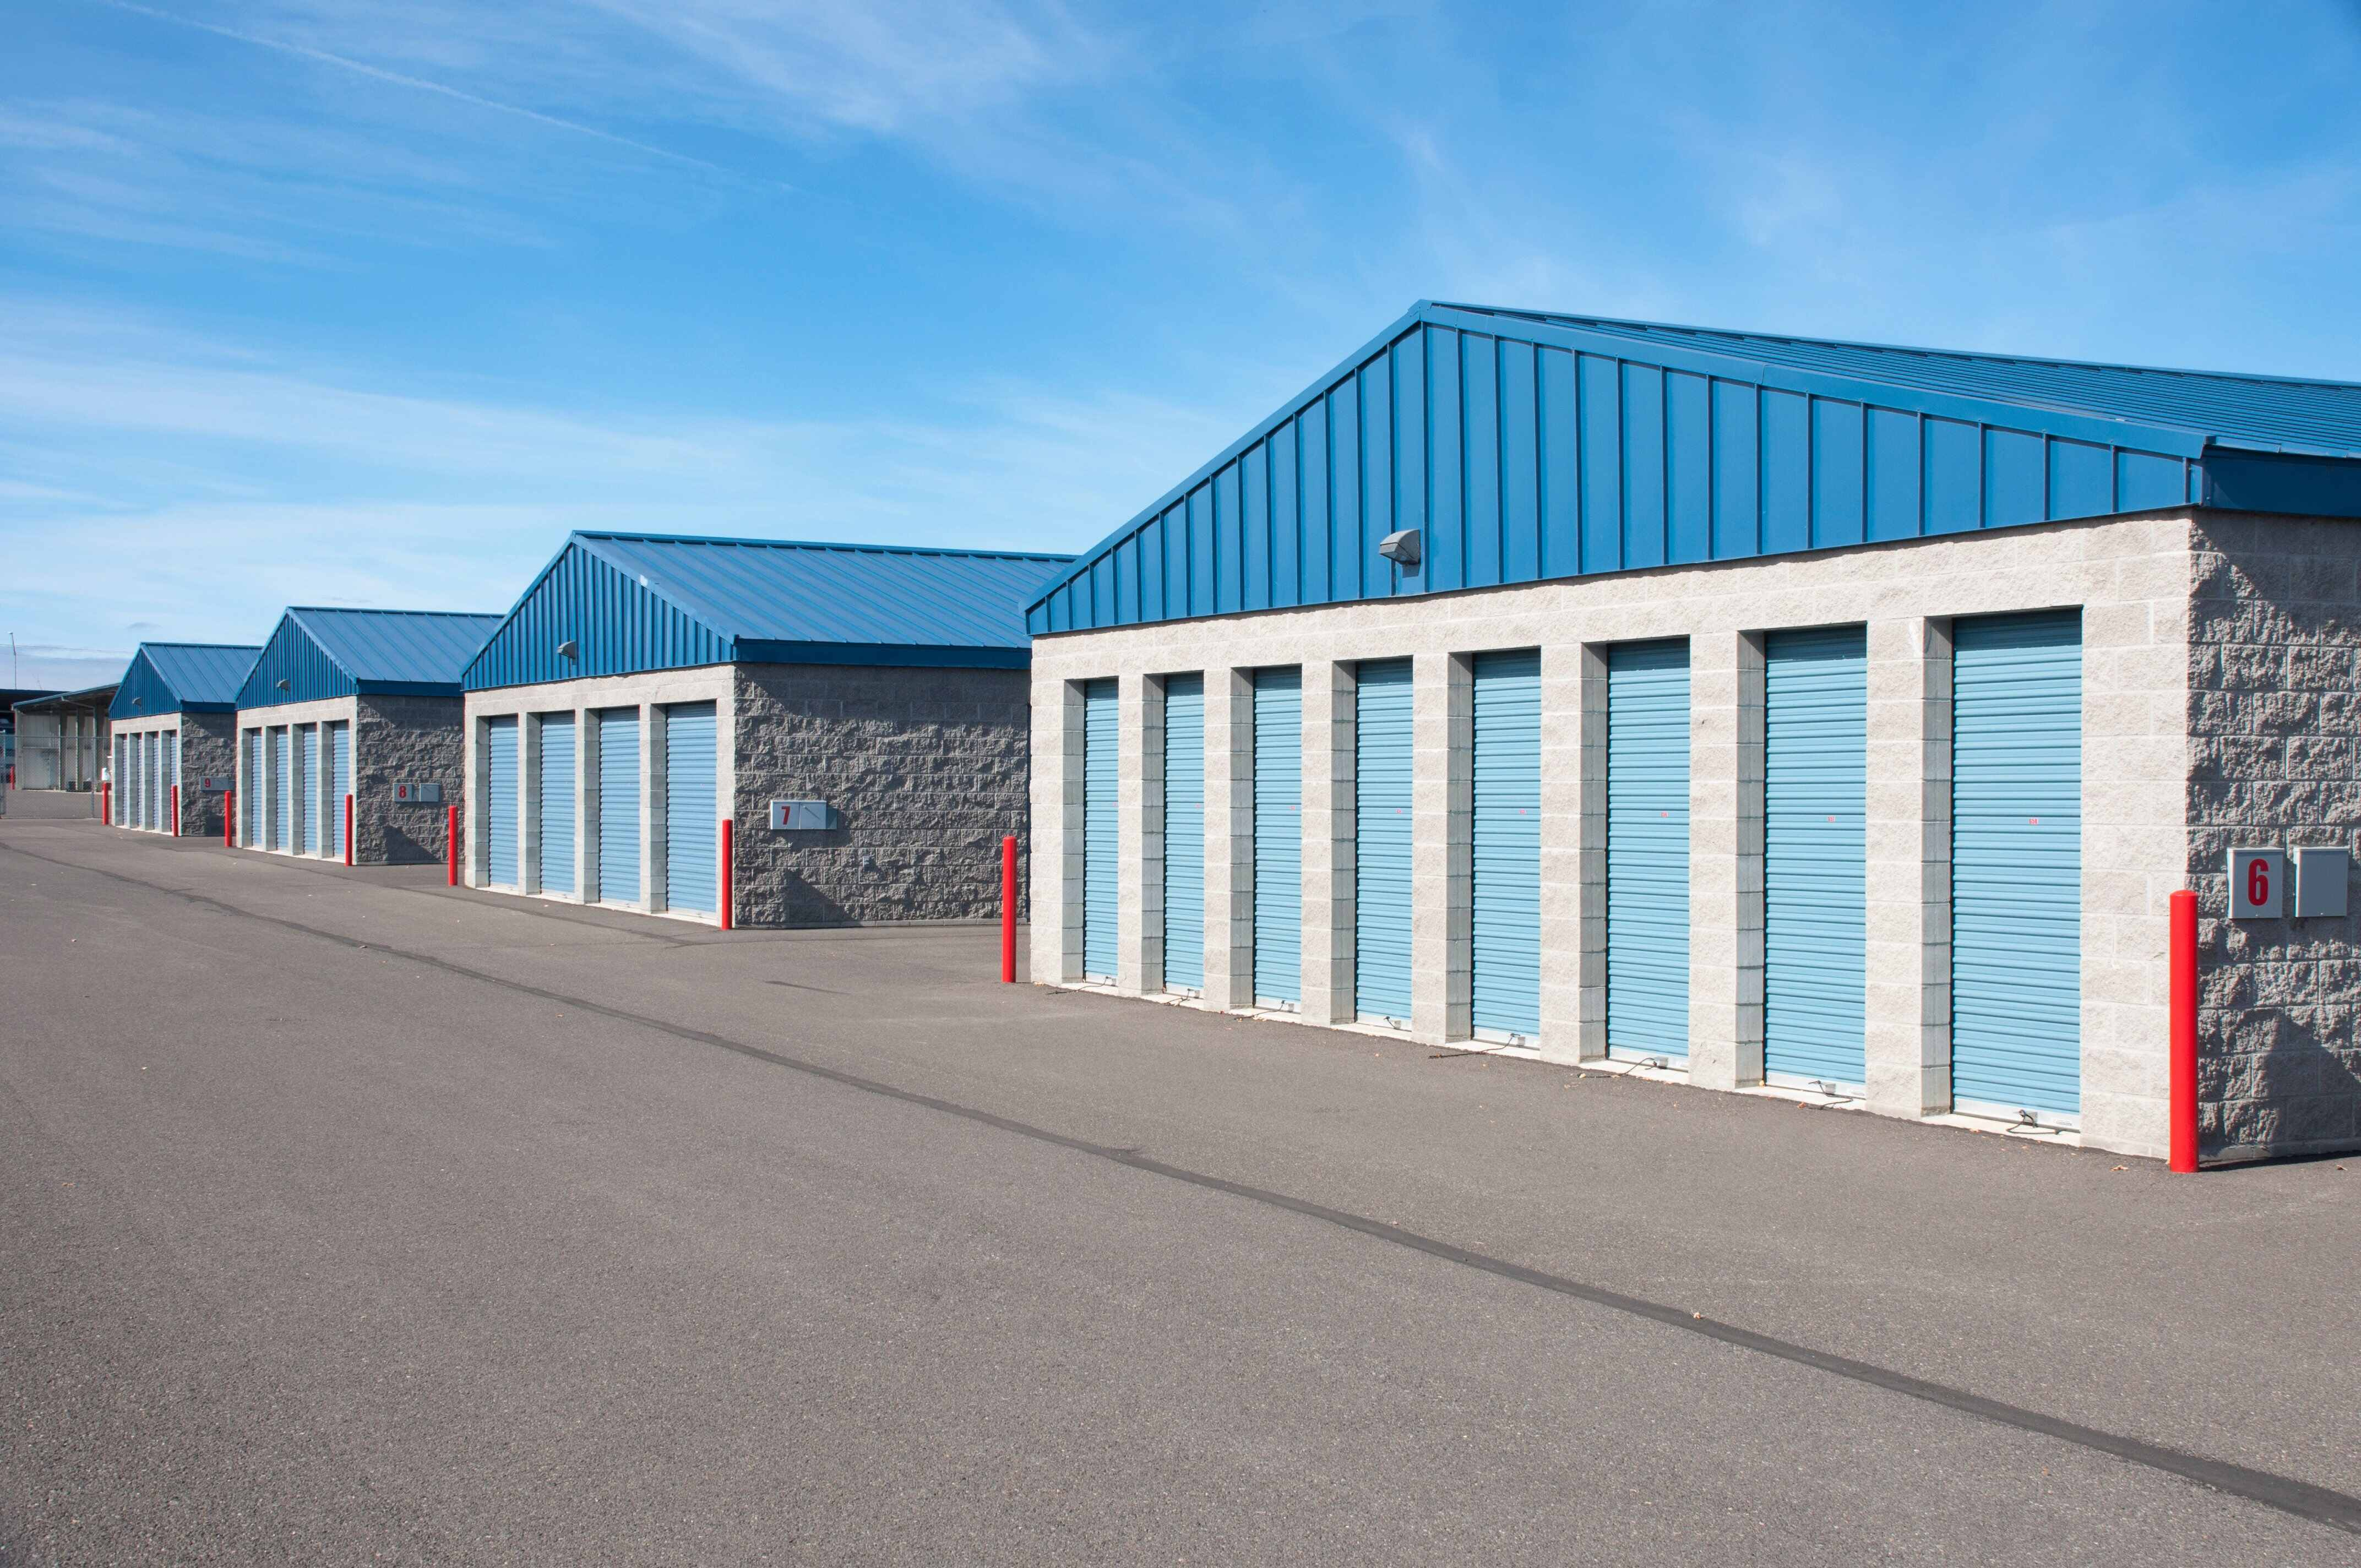 self storage facility with multiple units